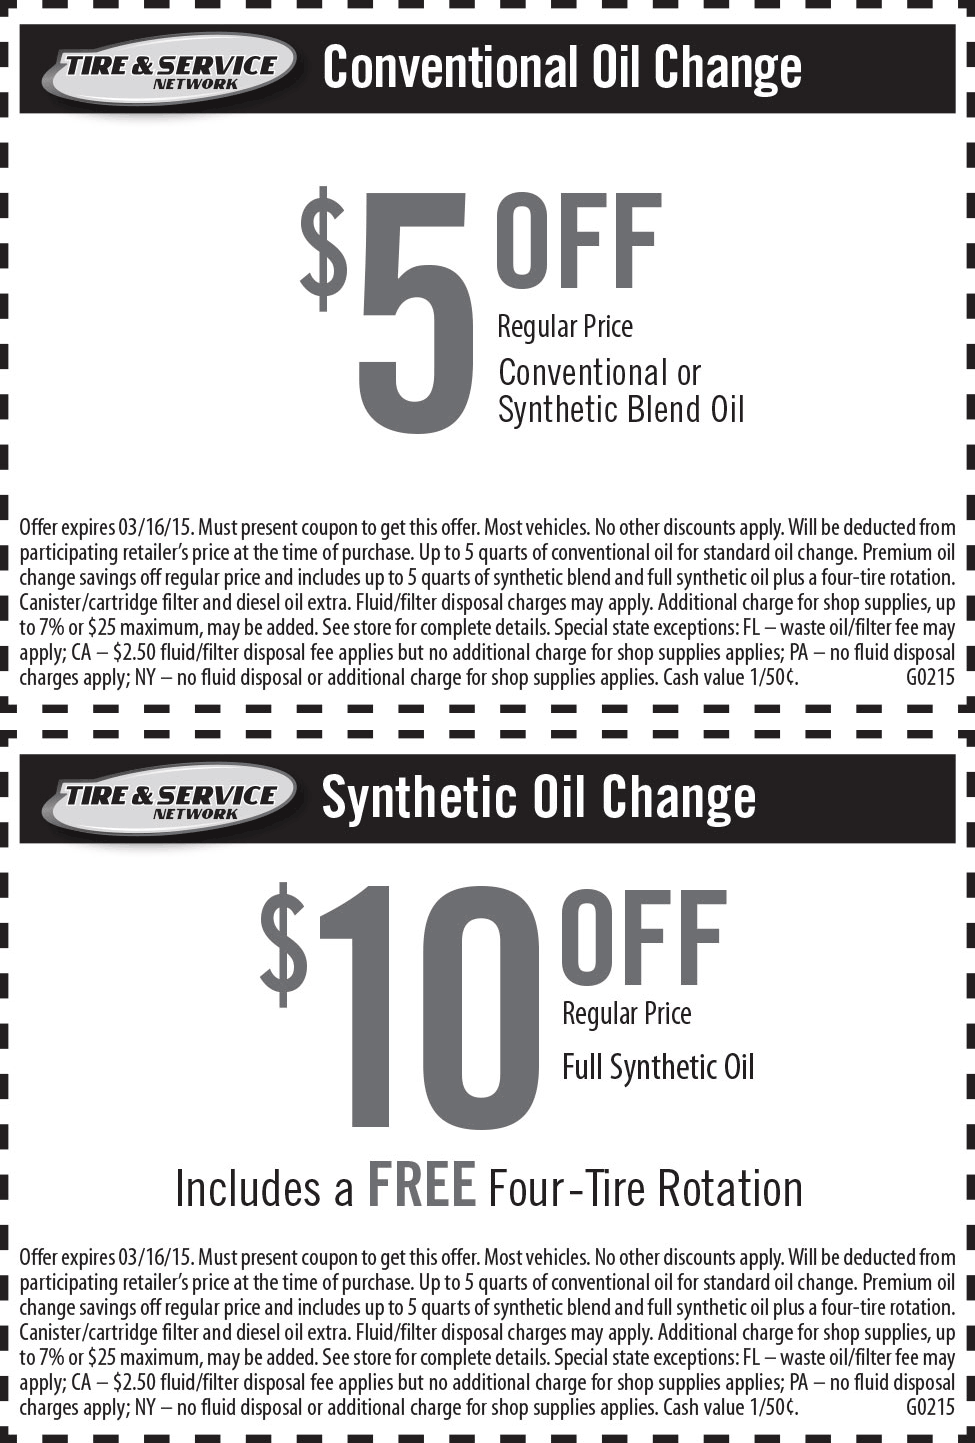 Goodyear Coupon September 2018 $5-10 off an oil change at Goodyear